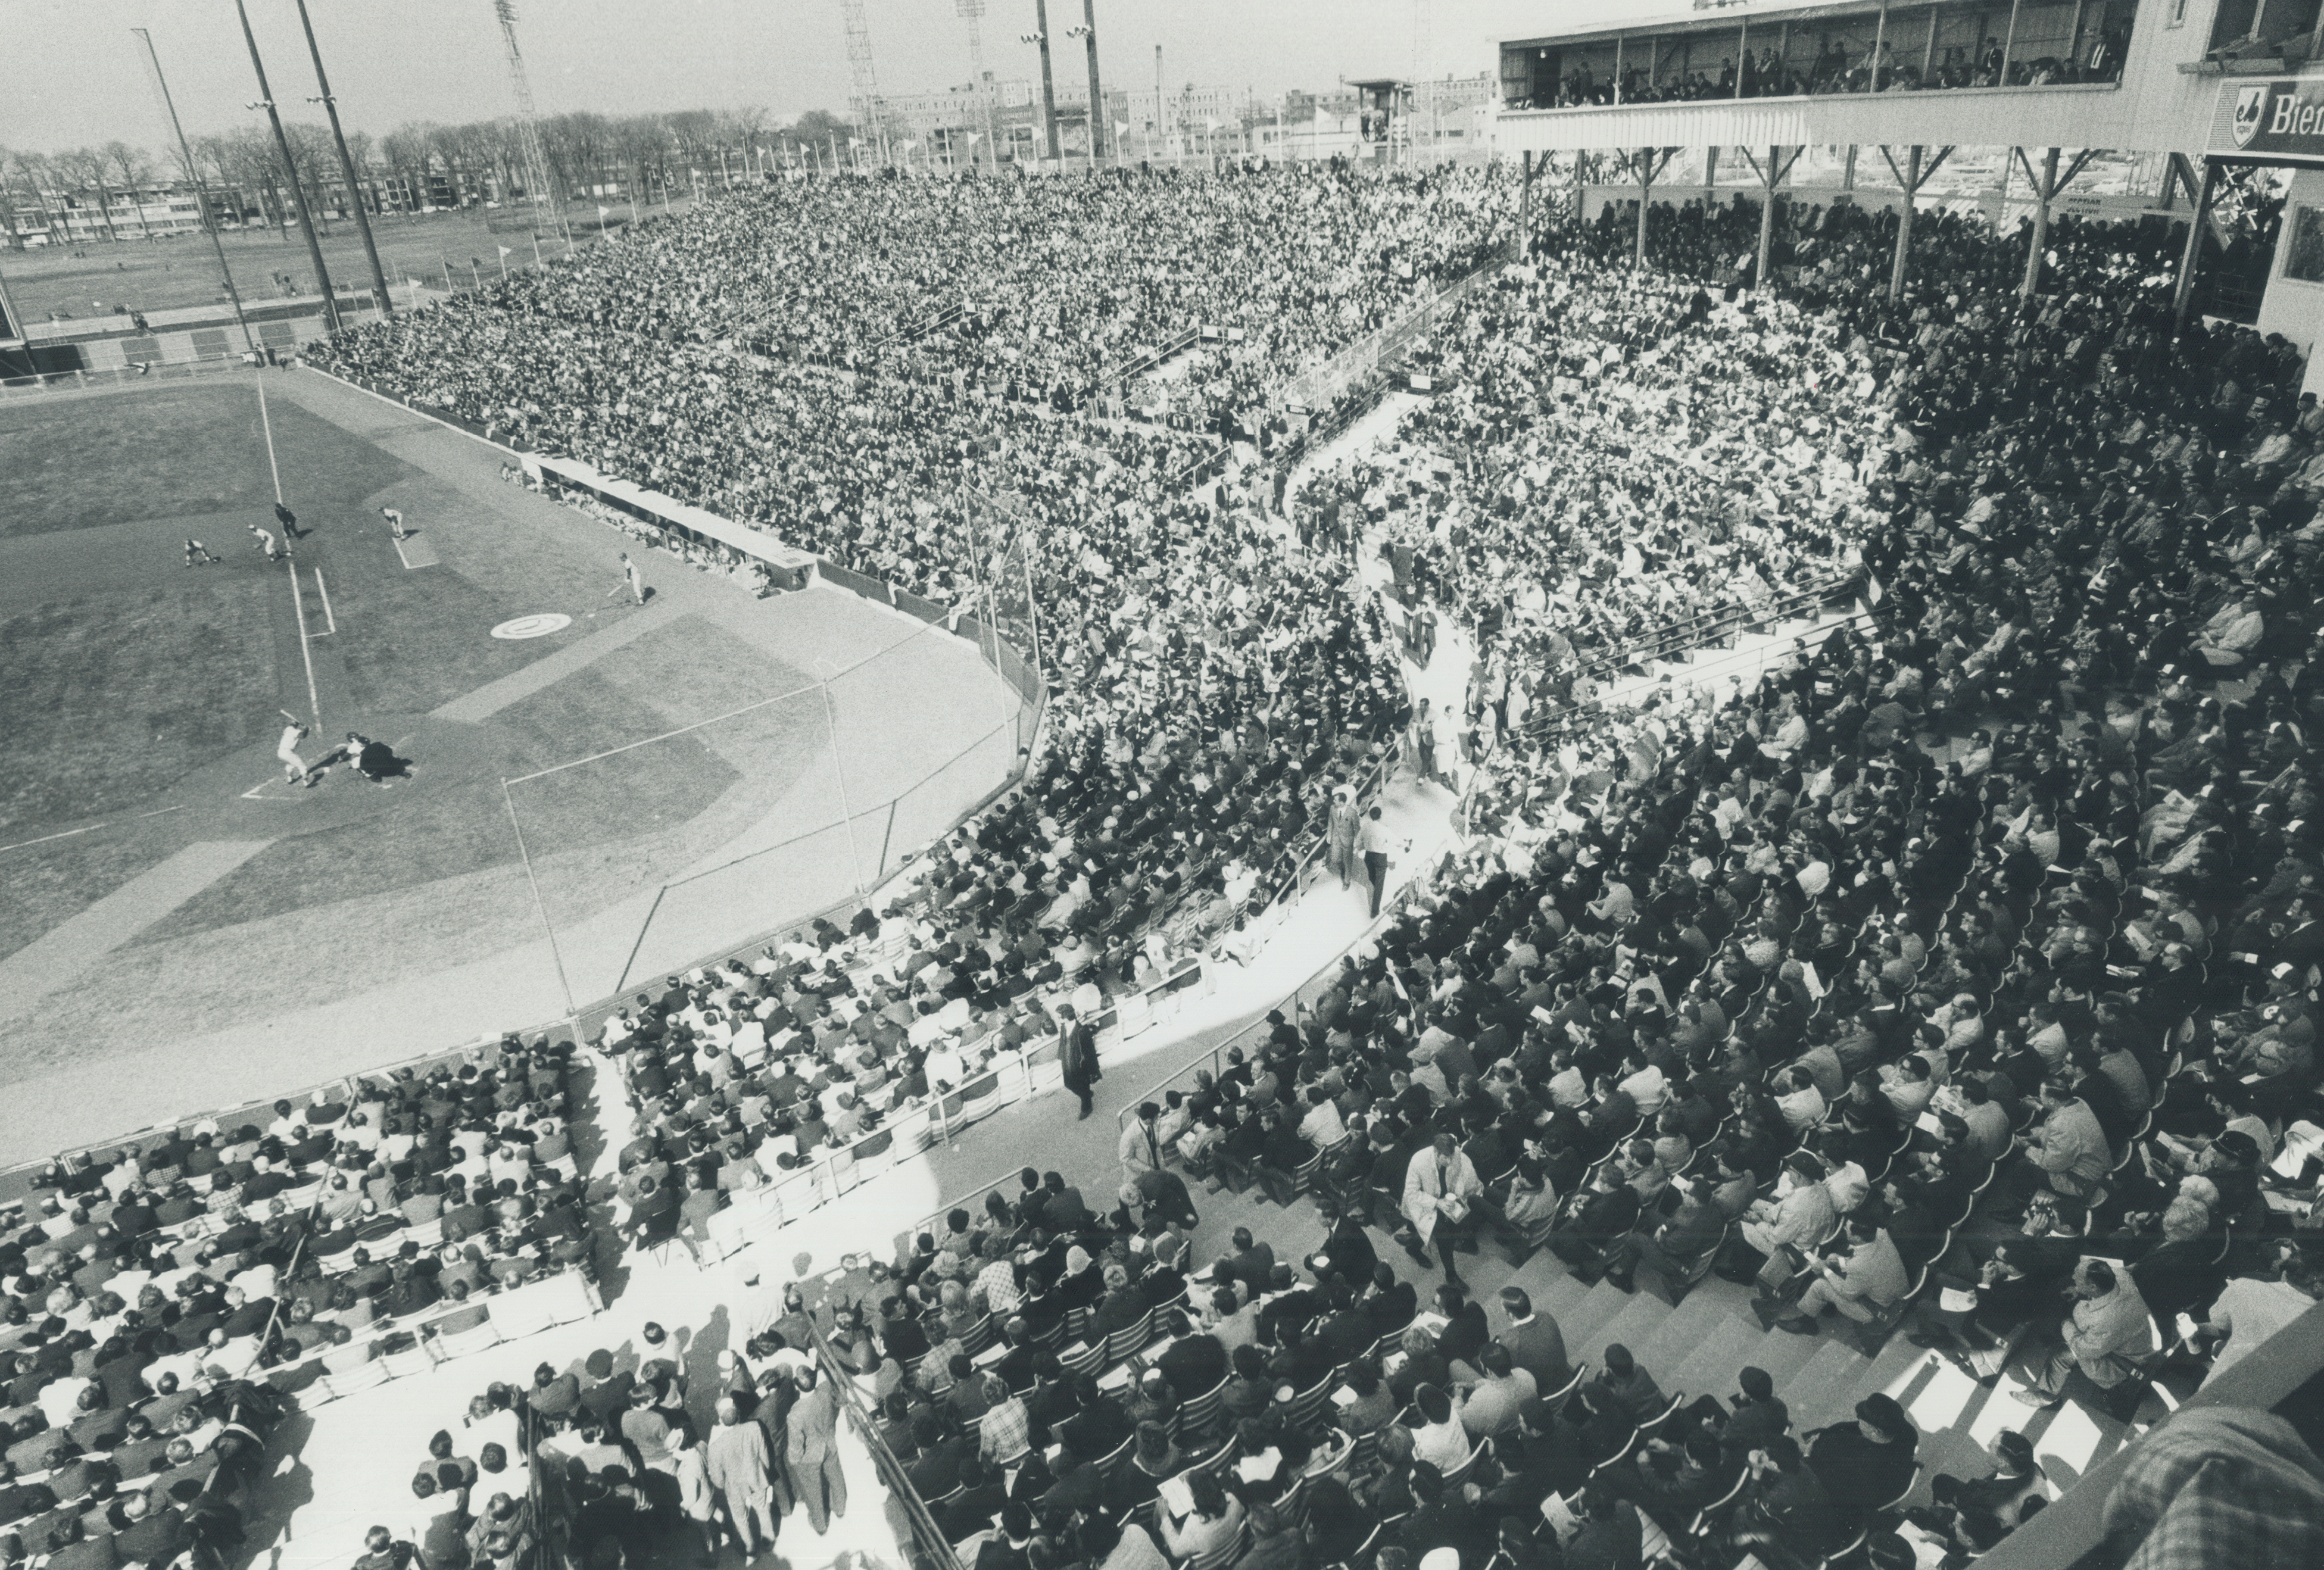 Sports File ruder bonehall; pro. Expos (history) of more than 29;000 crowd at home opener Jarry Park